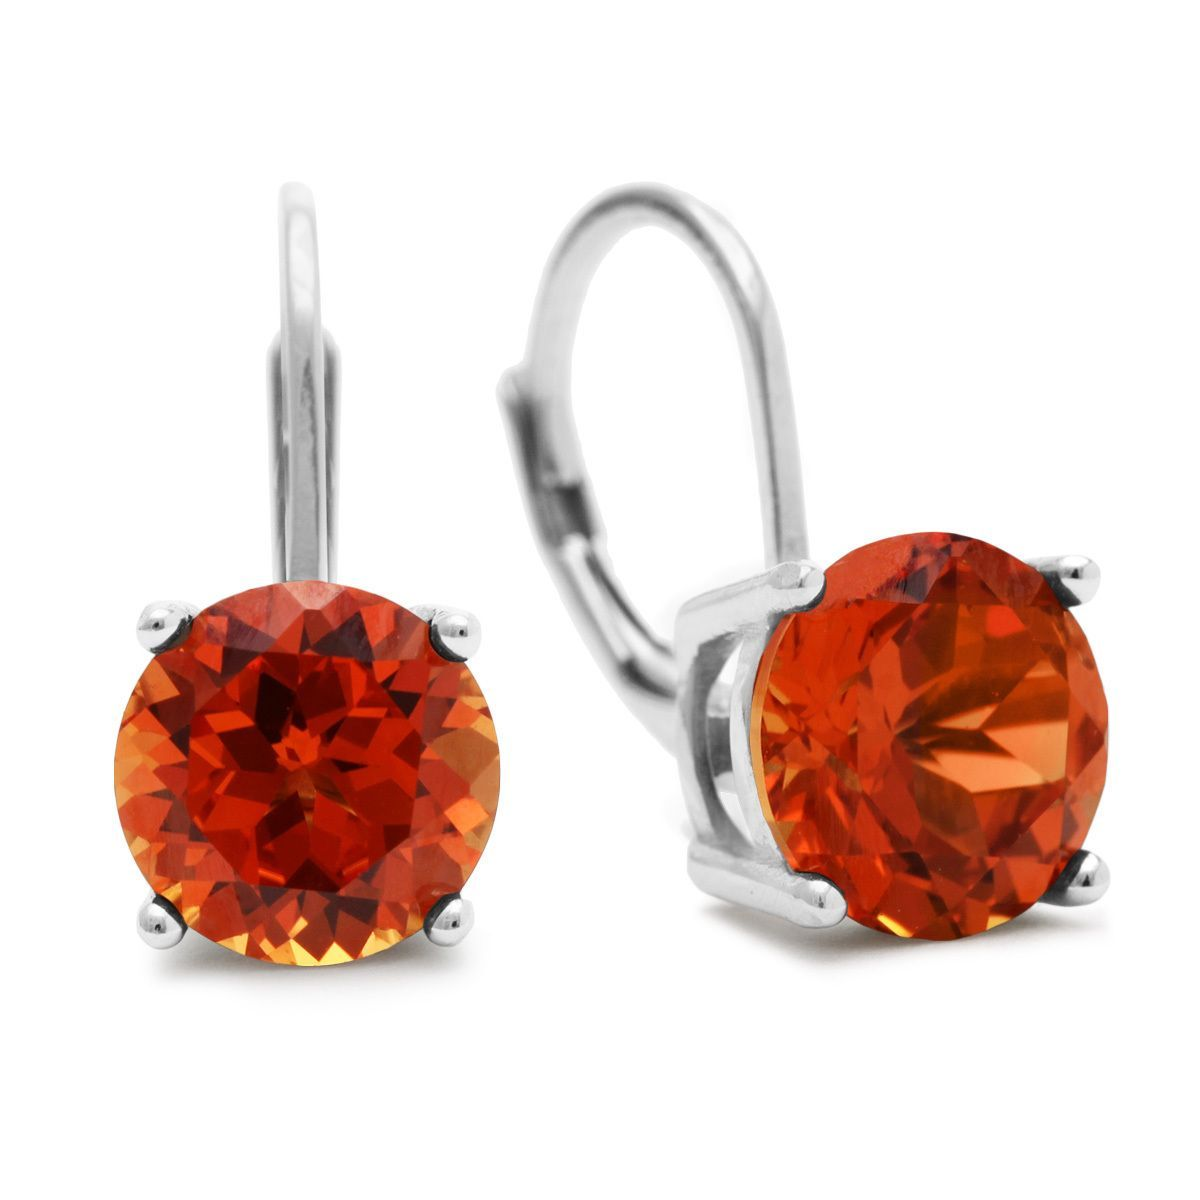 golds ring s and sapphire prouctdetail earrings diamond gold carat padparadscha white in